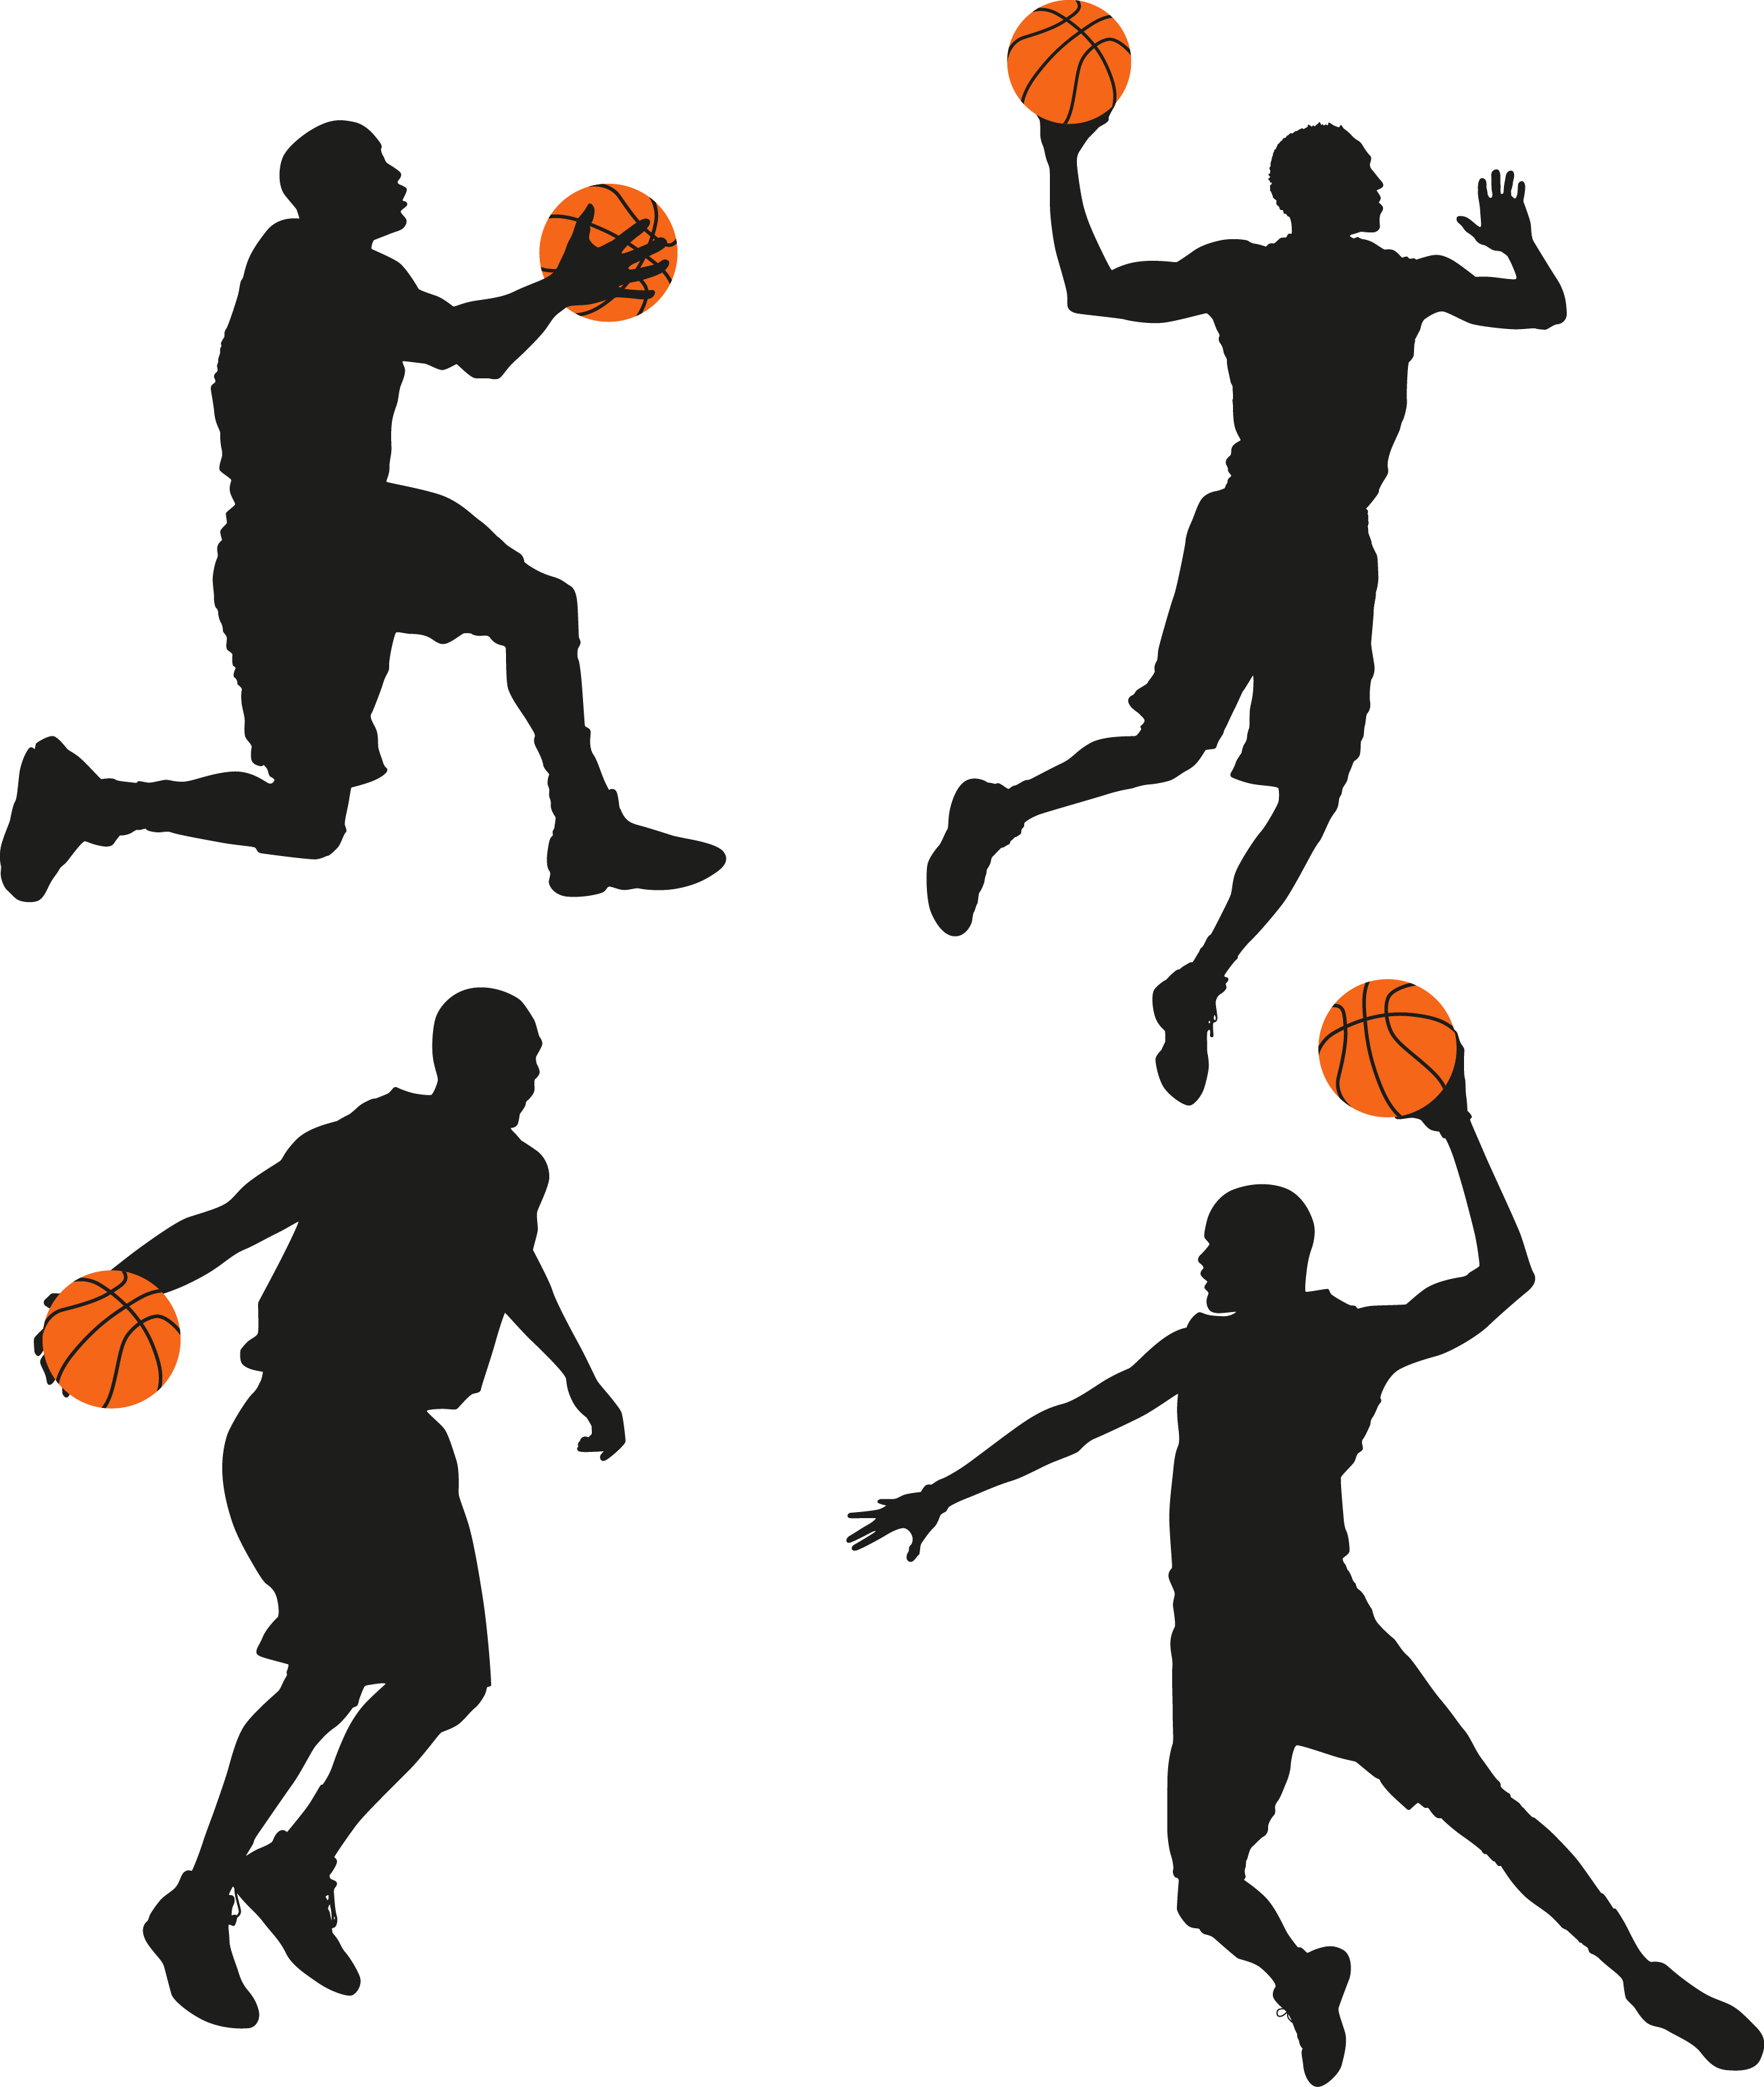 My heart belongs to a basketball player clipart image freeuse download Stephen Curry Silhouette at GetDrawings.com | Free for personal use ... image freeuse download